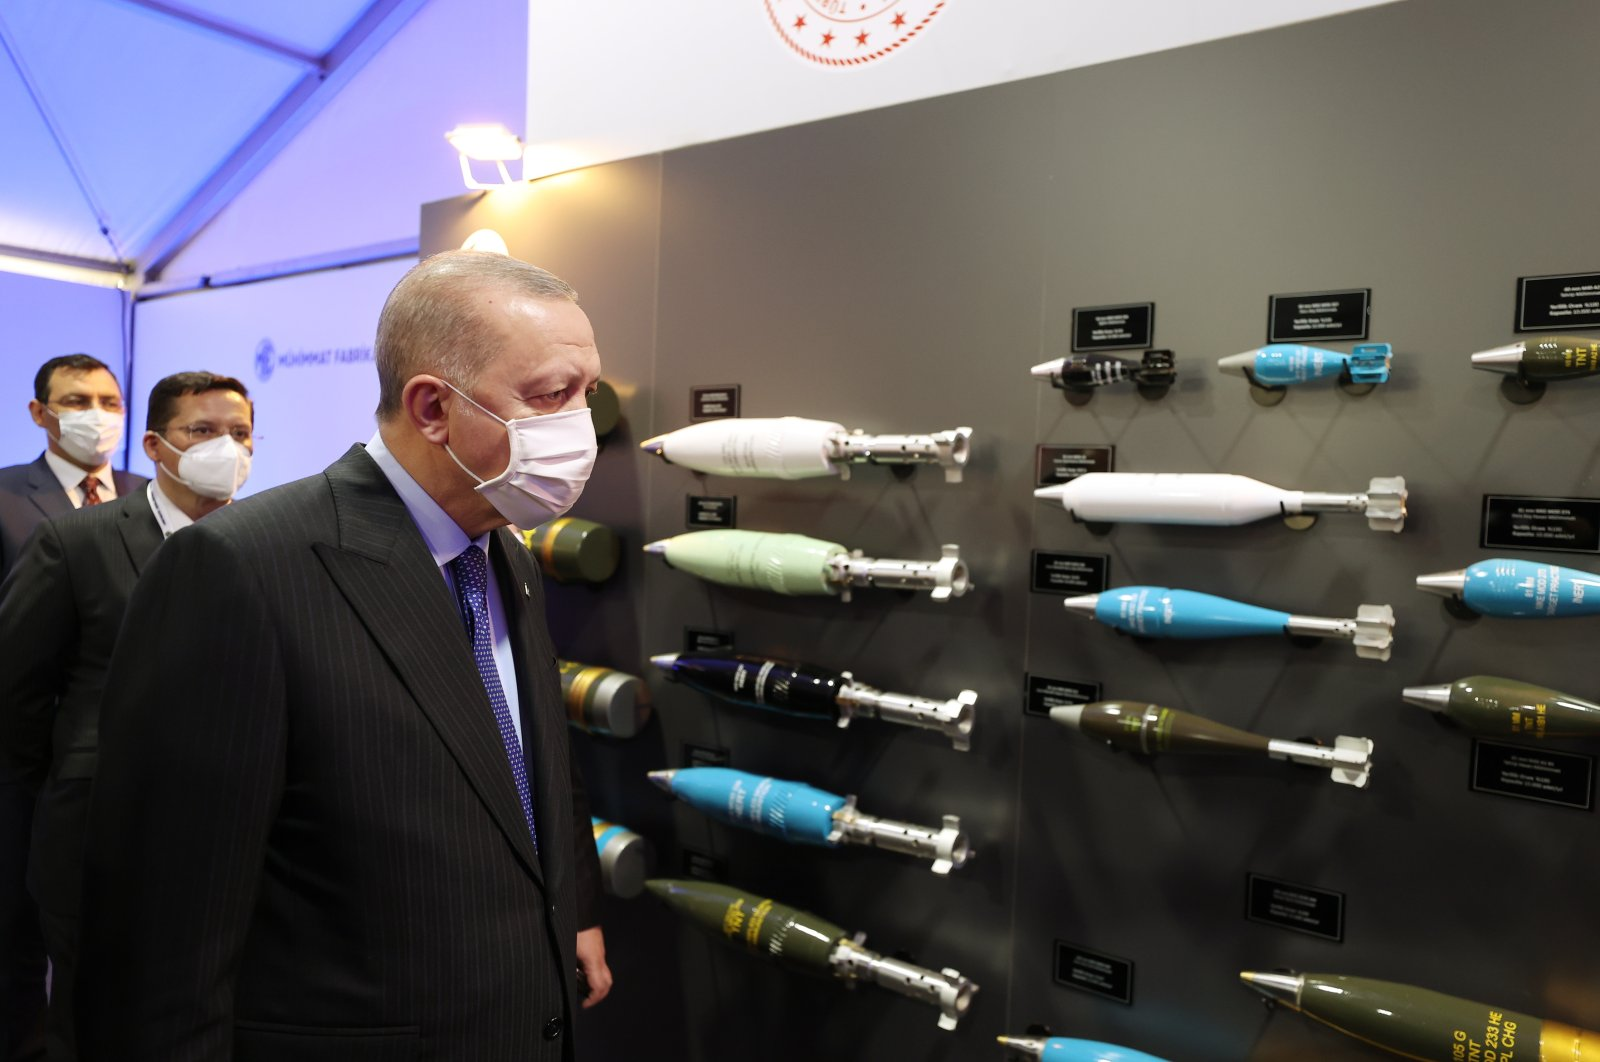 President Recep Tayyip Erdoğan inspects missiles at the newly opened MKEK factory in Ankara on Apr. 29, 2021 (AA Photo)